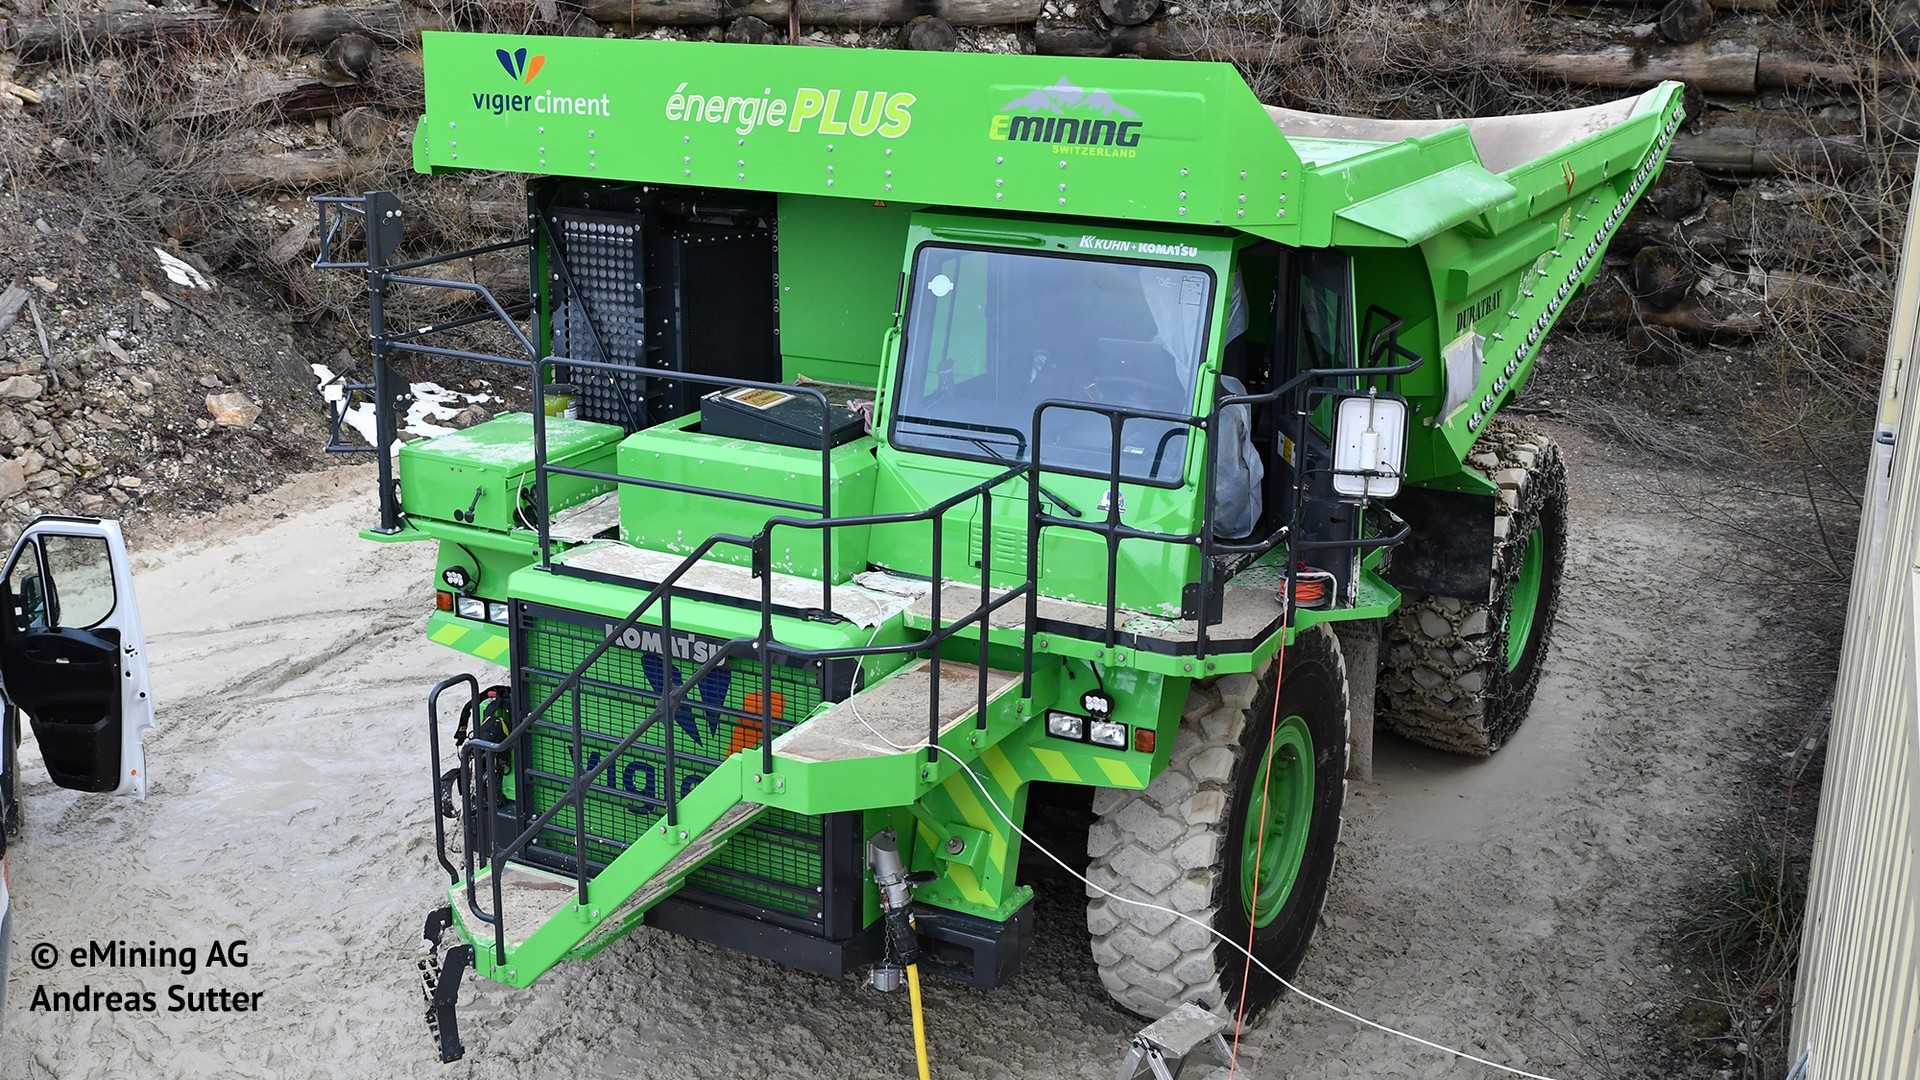 Meet The World's Largest EV: The Elektro Dumper